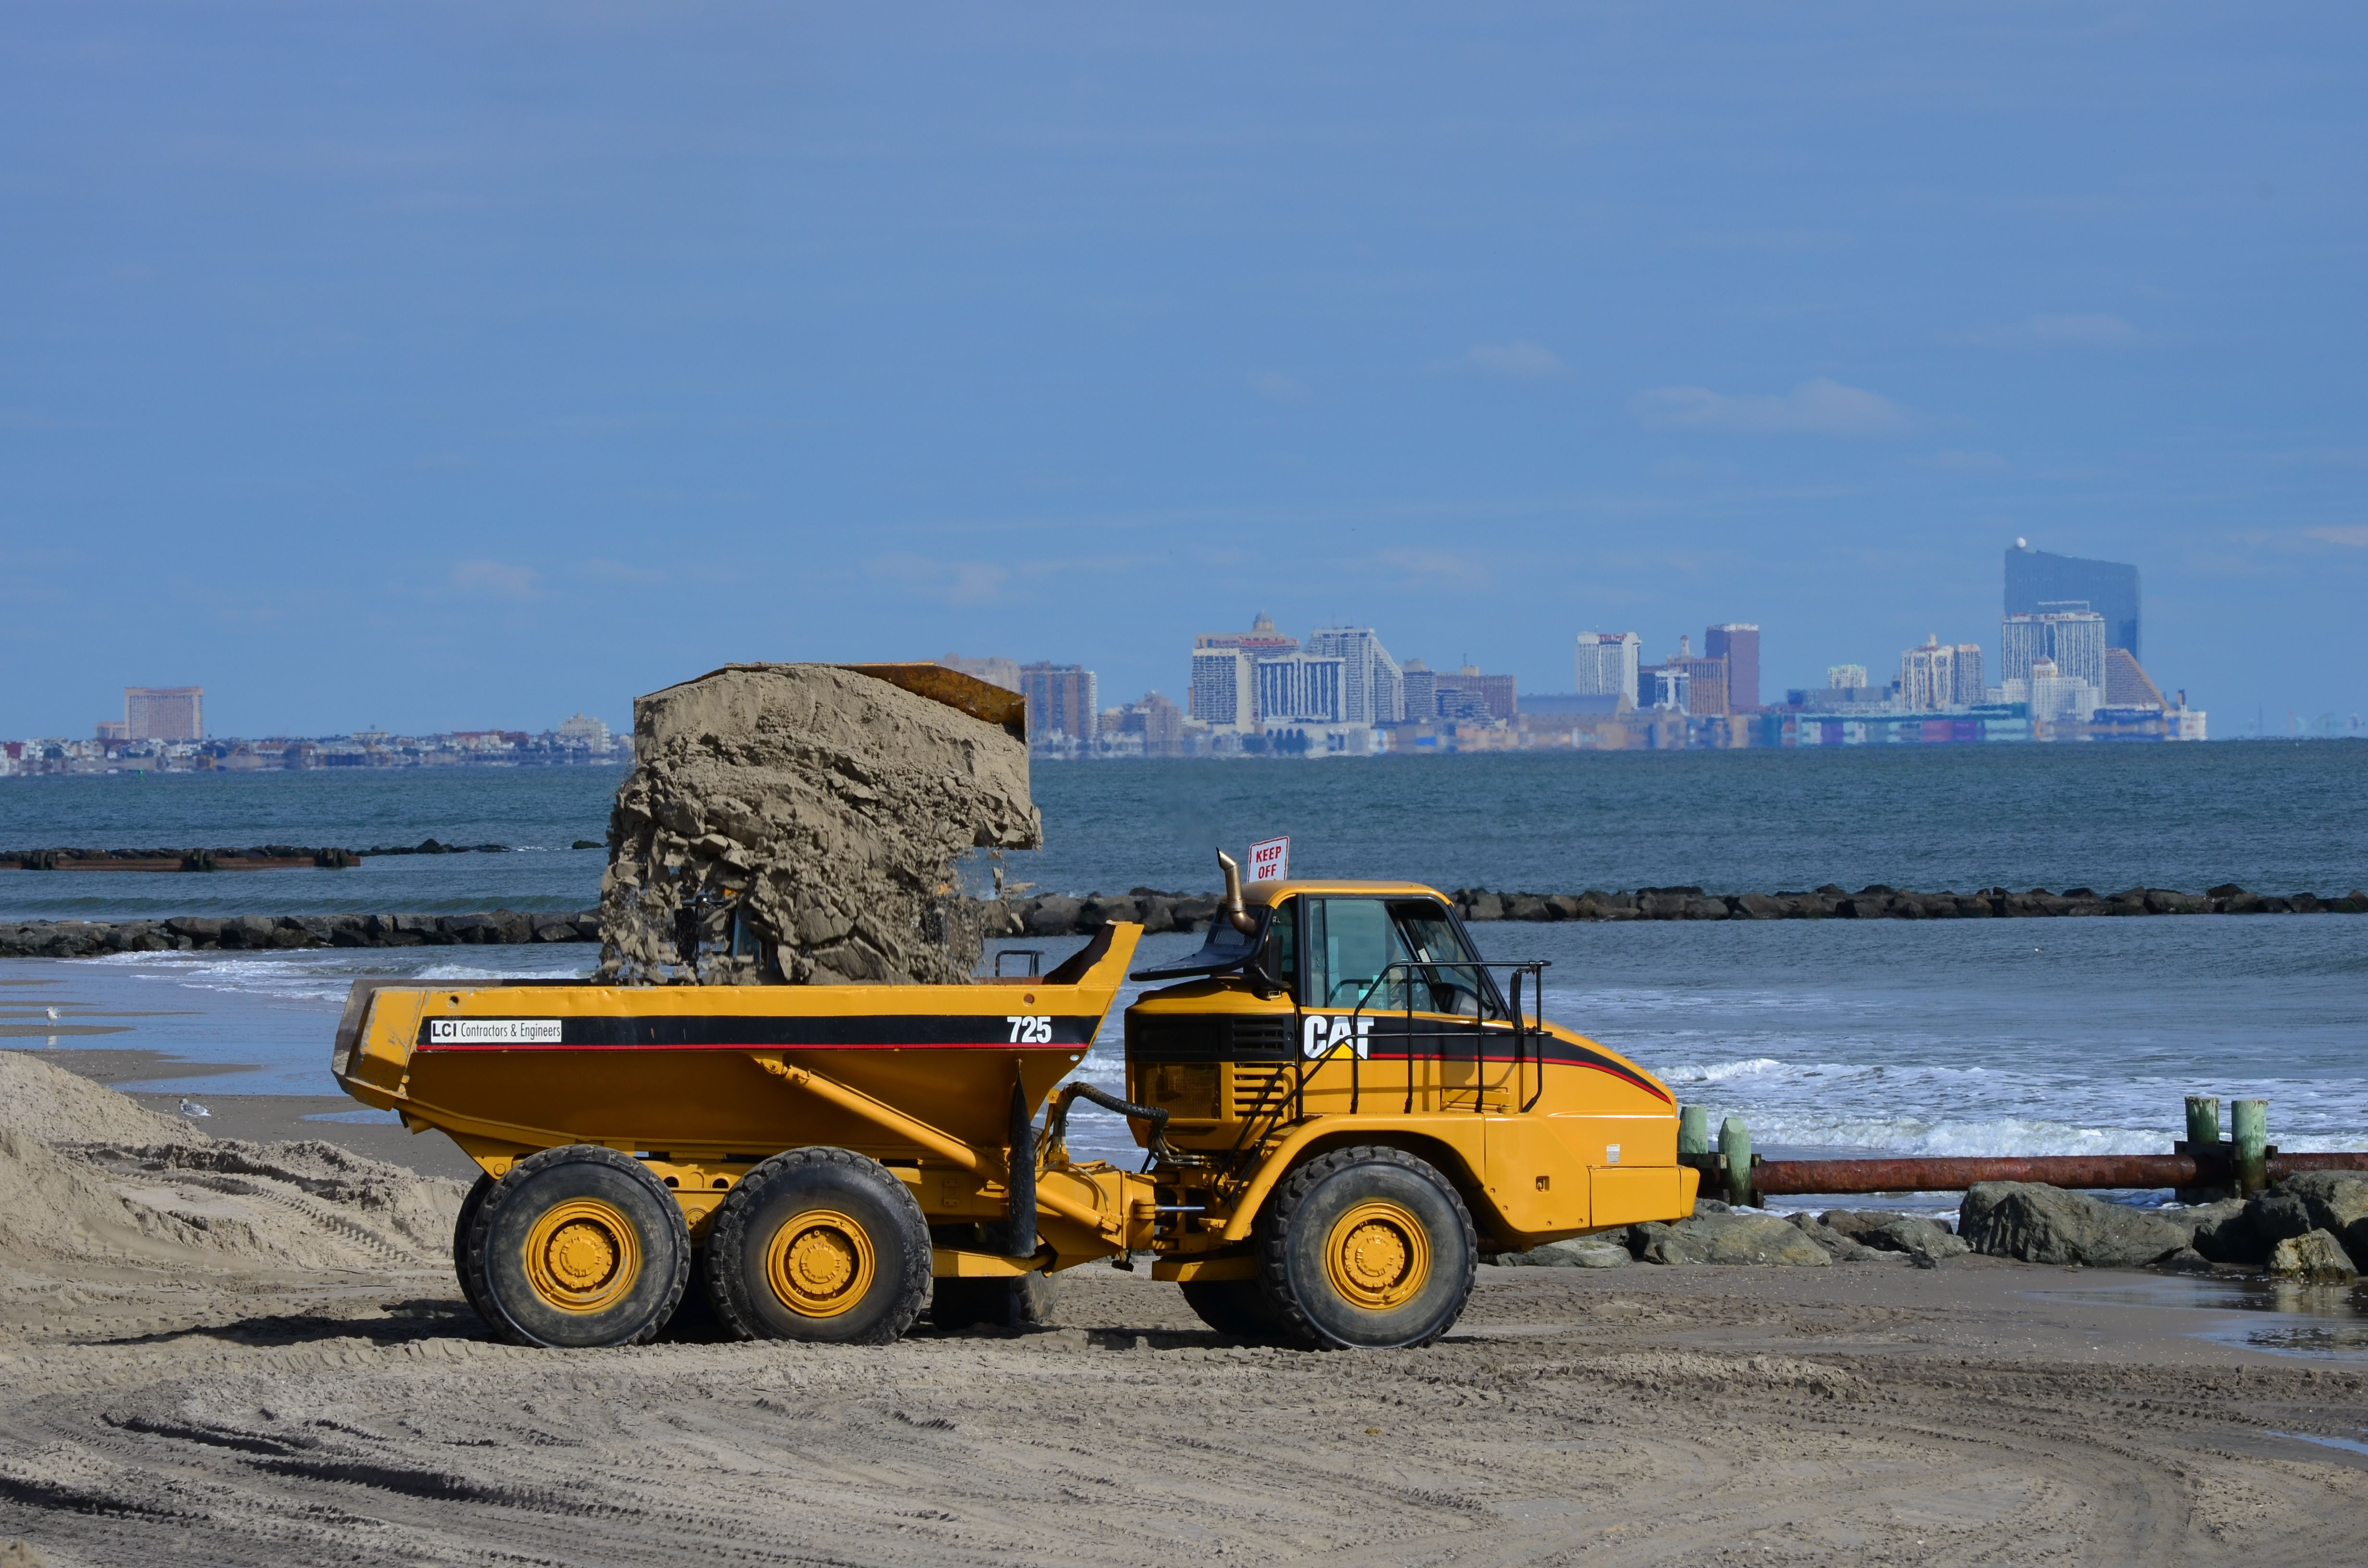 CAT 725 Articulated Dump Truck Taking Sand from CAT 950G Wheel Loader, with Atlantic  City